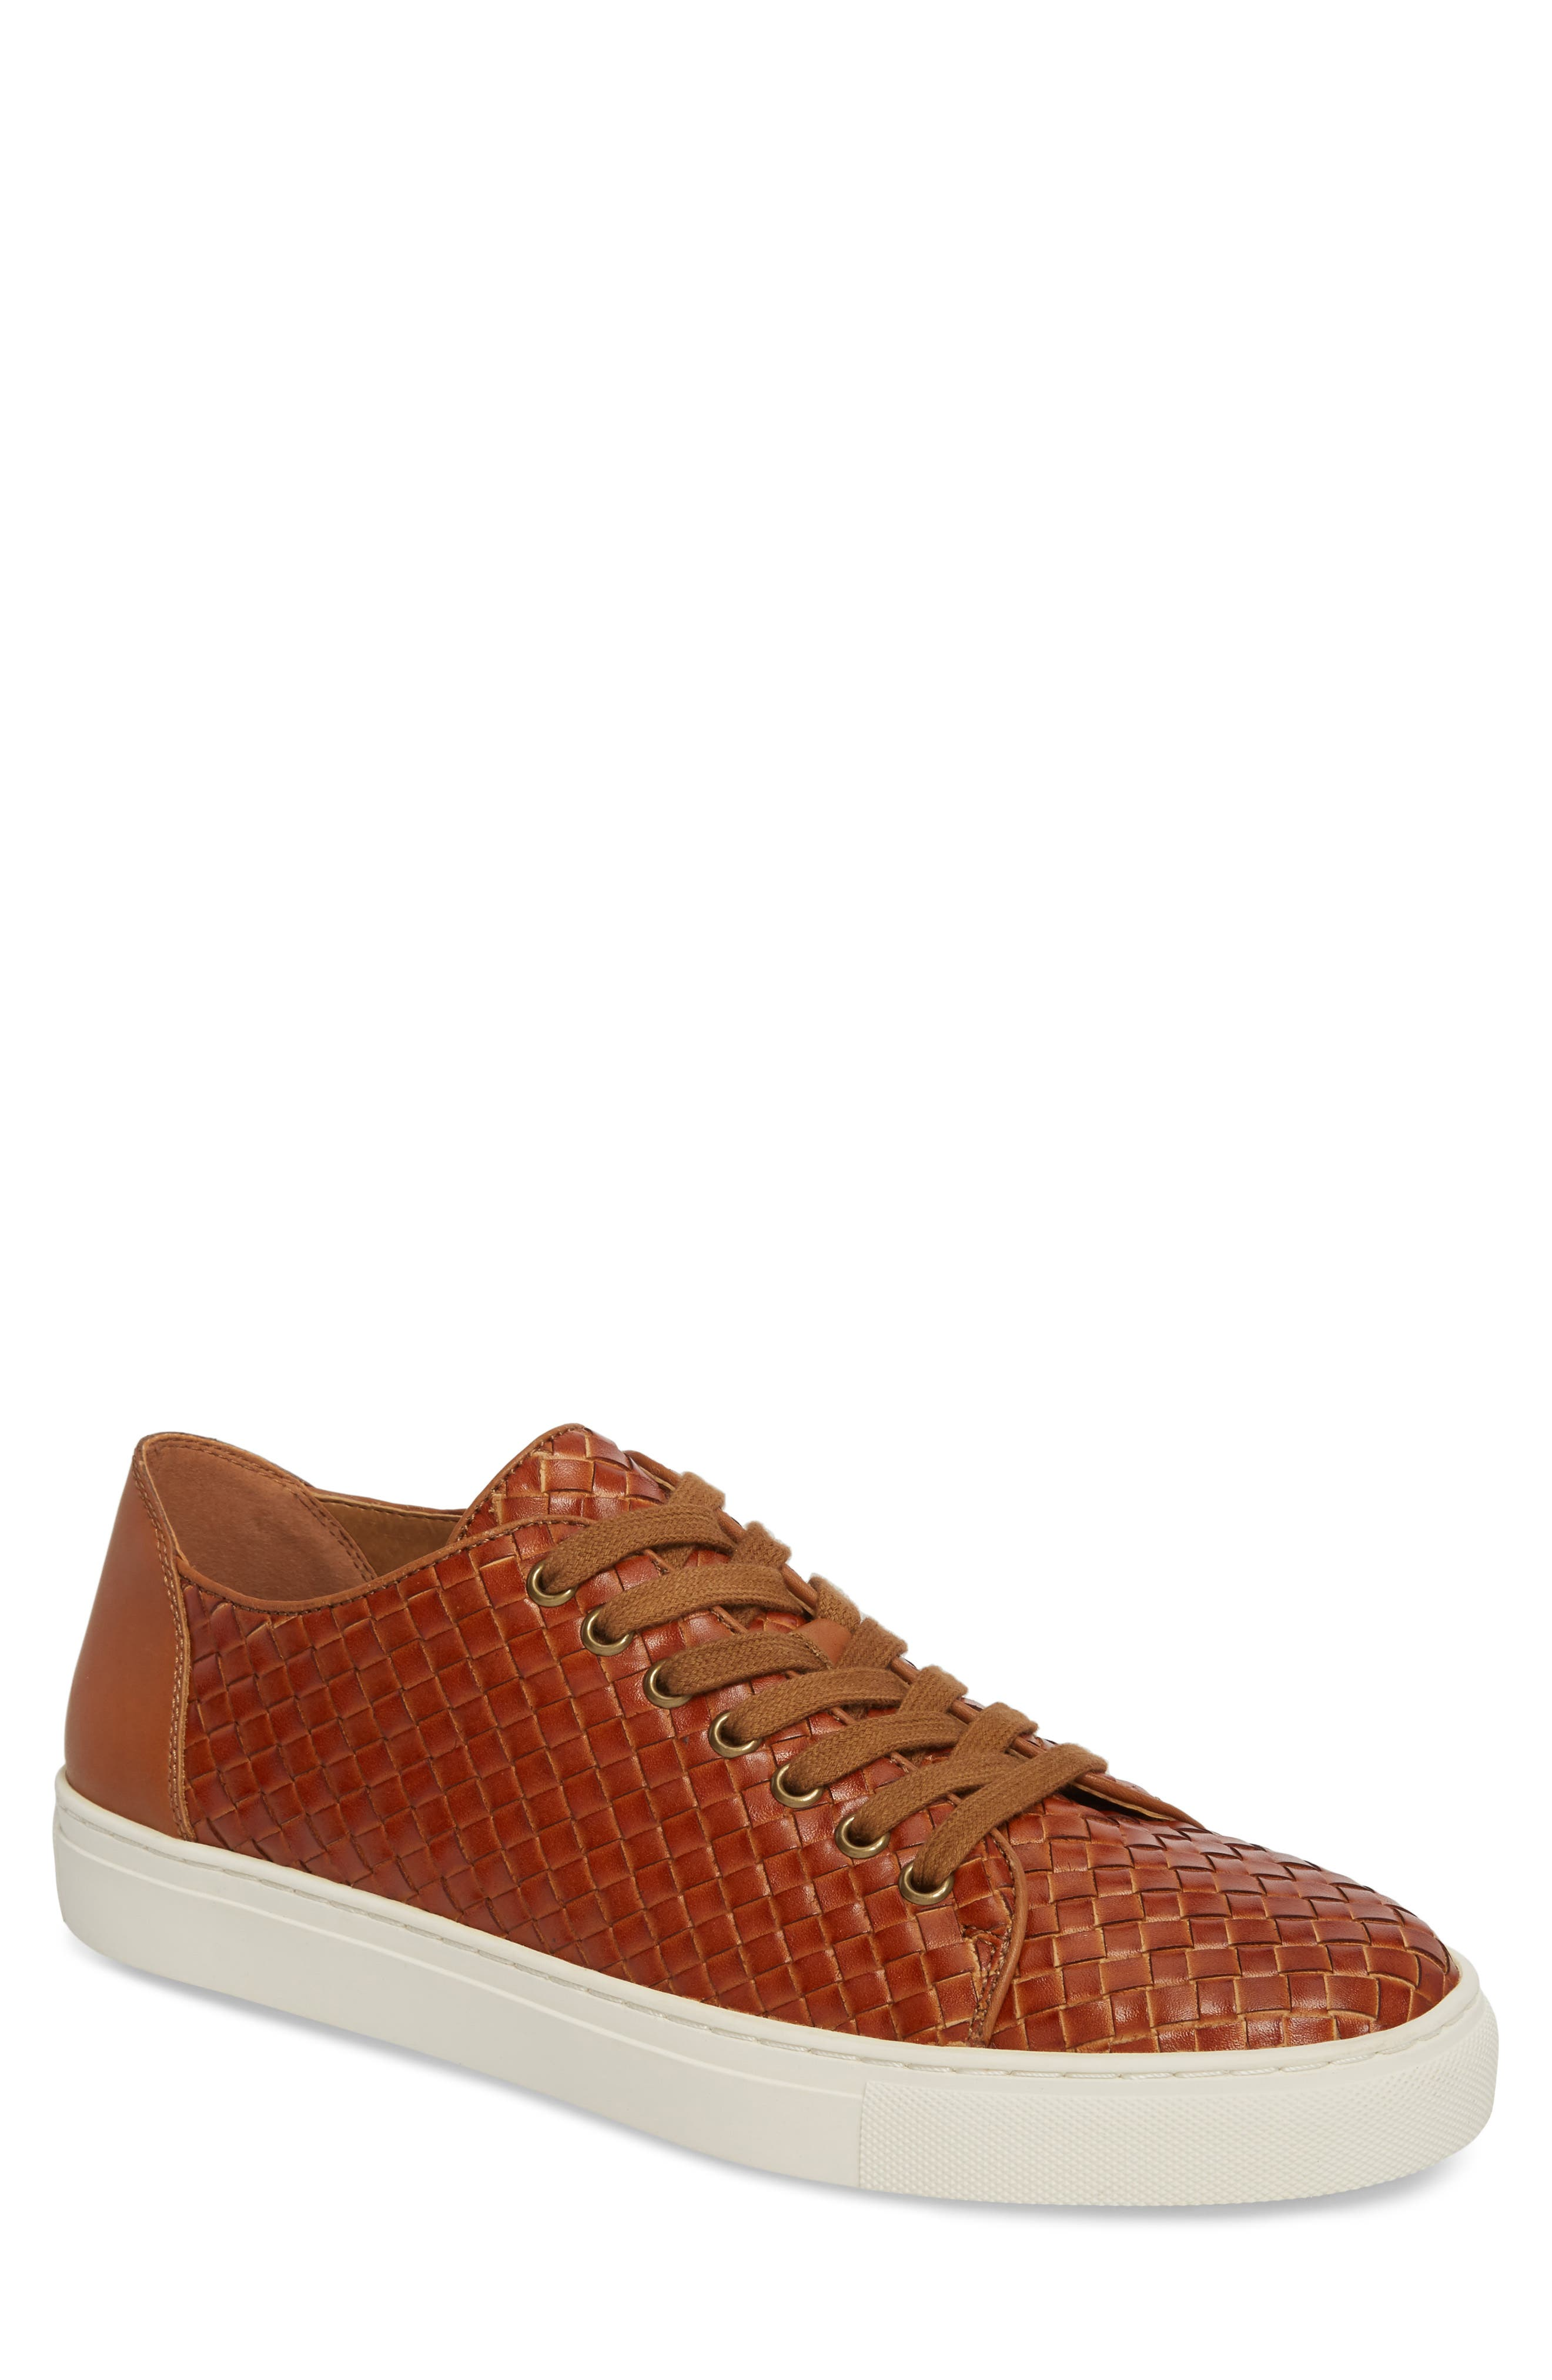 Alto Woven Low Top Sneaker,                         Main,                         color, Saddle Leather